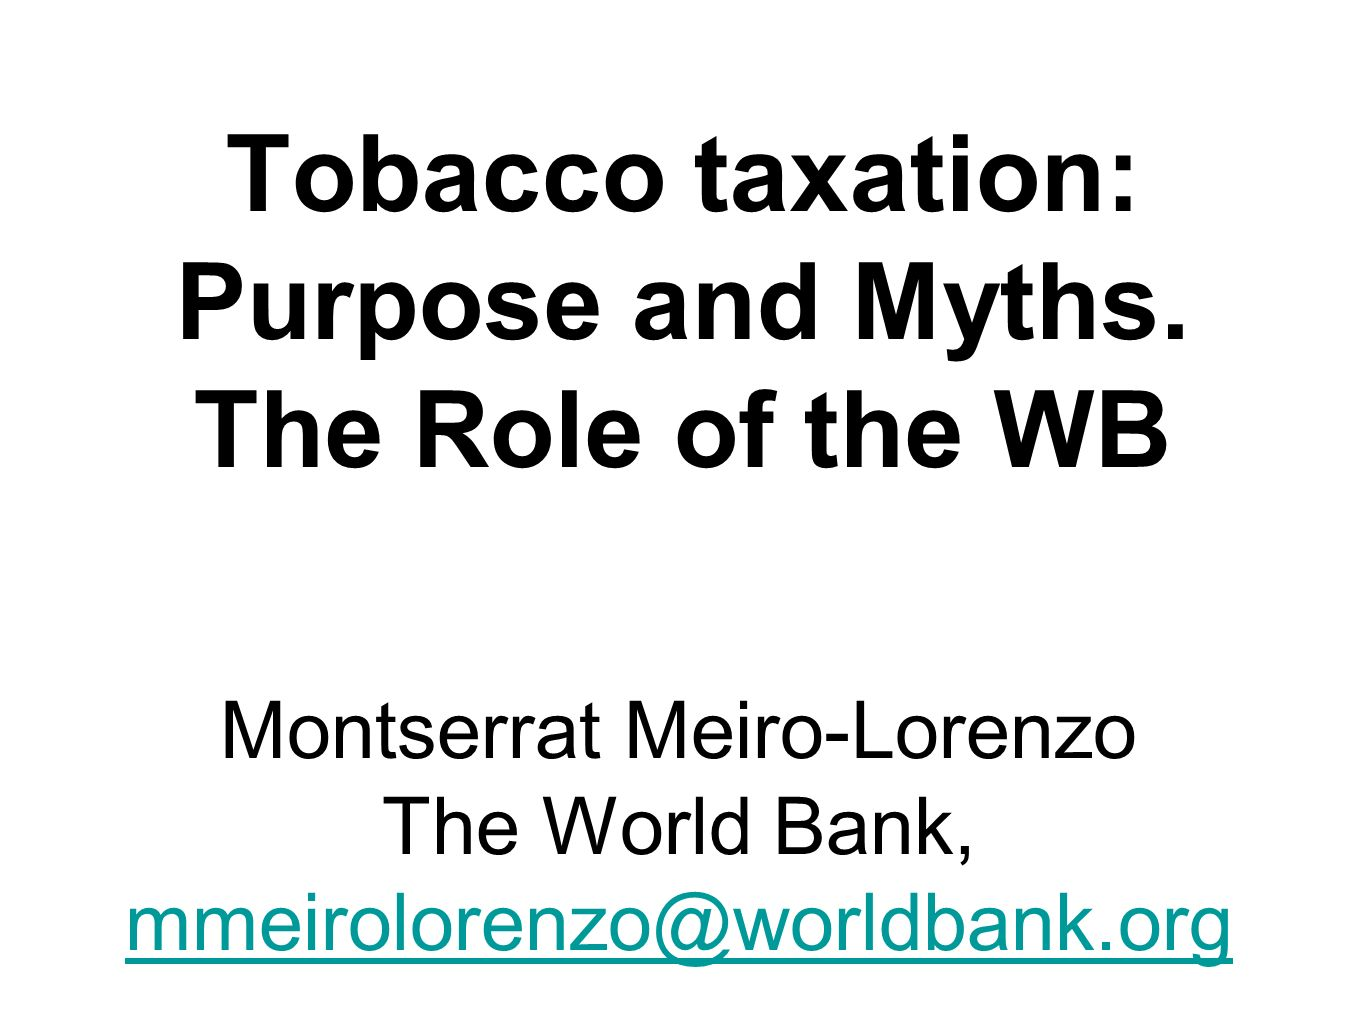 Tobacco taxation: Purpose and Myths. The Role of the WB